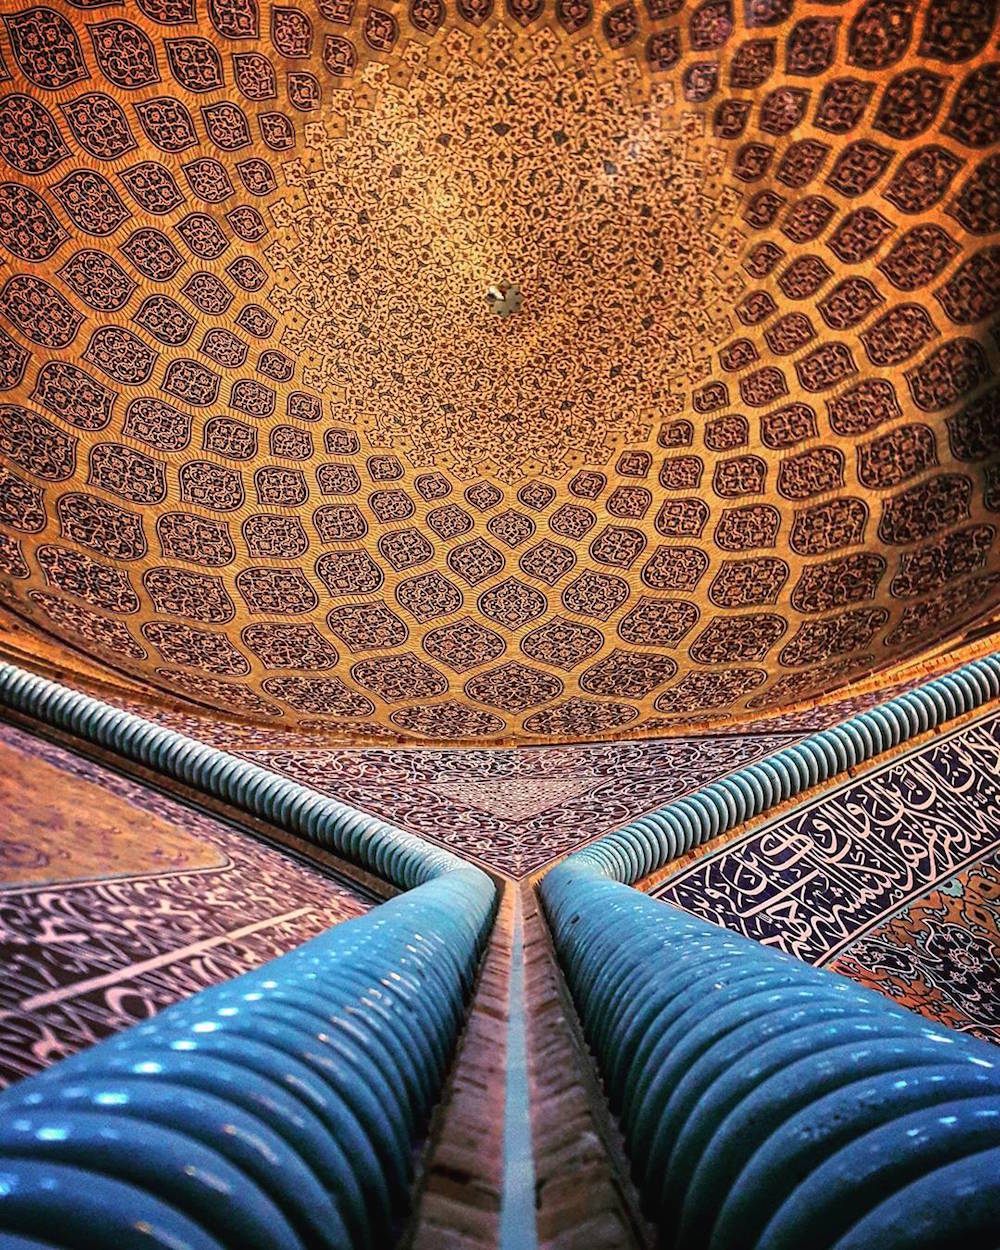 Sheikh Lotfollah mosque in Esfahan, Iran, about 400 years old